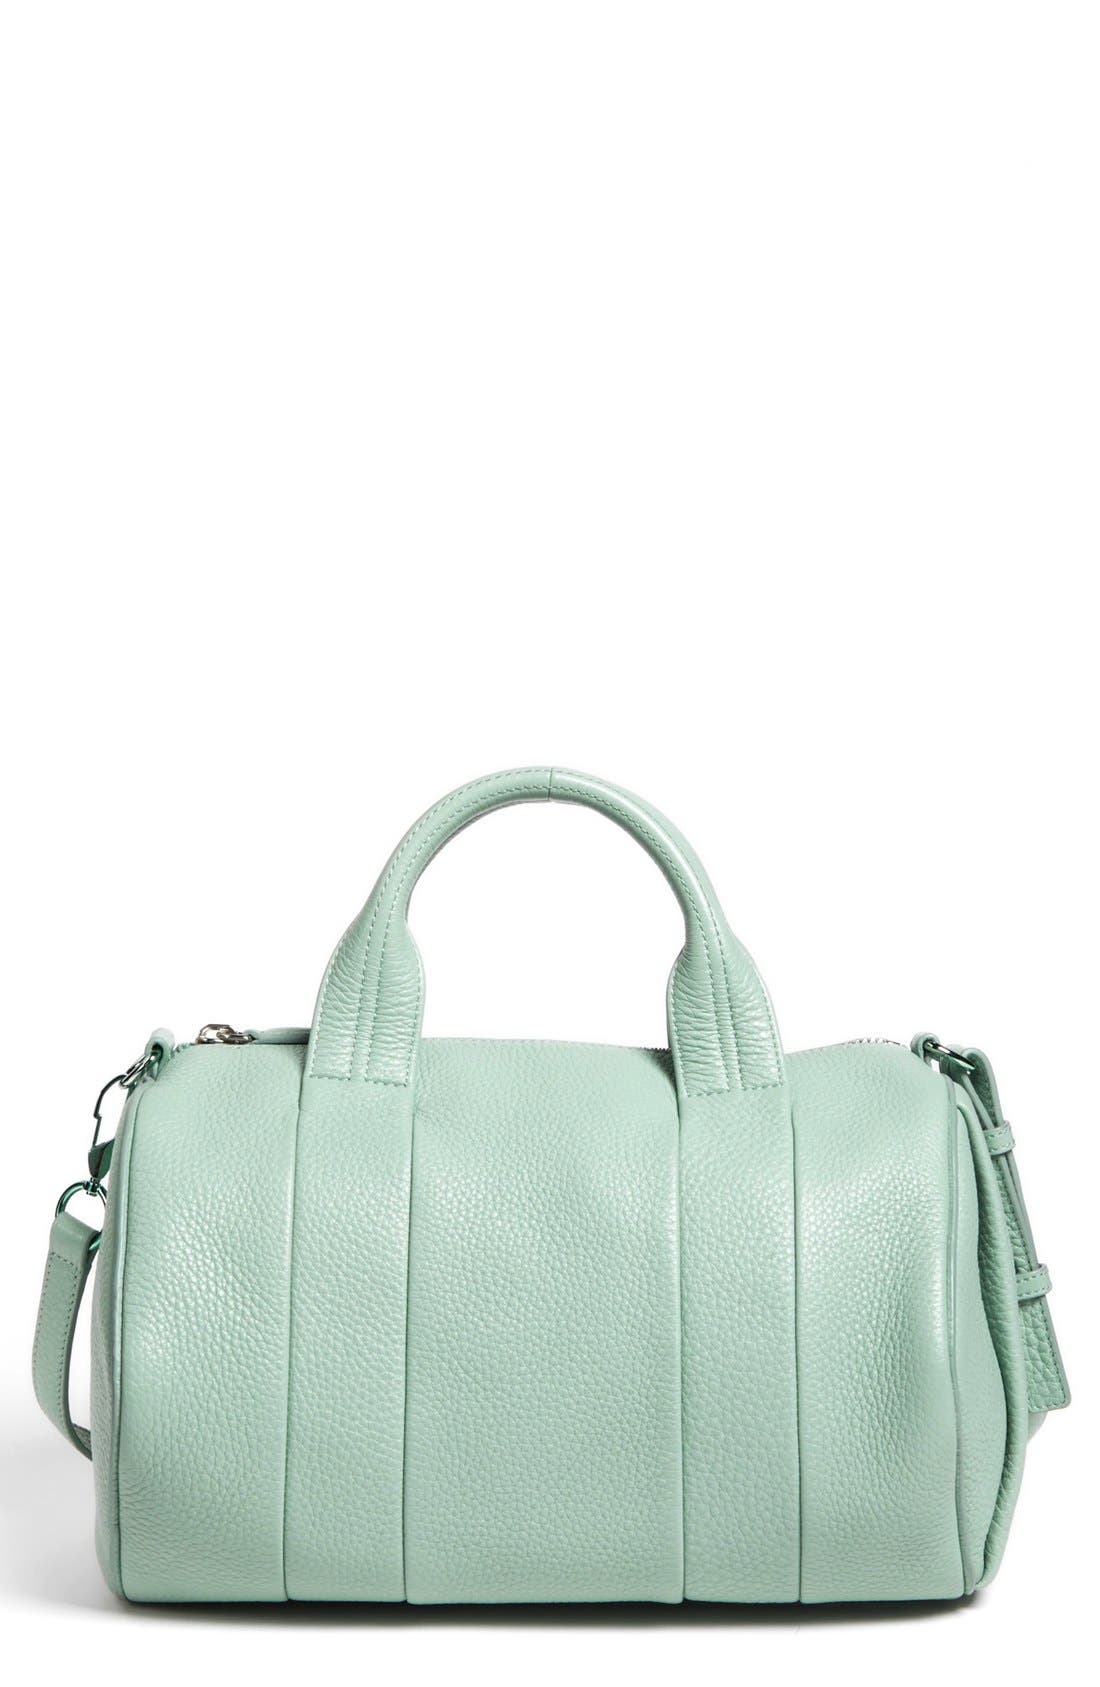 Main Image - Alexander Wang 'Rocco - Zinc' Leather Satchel